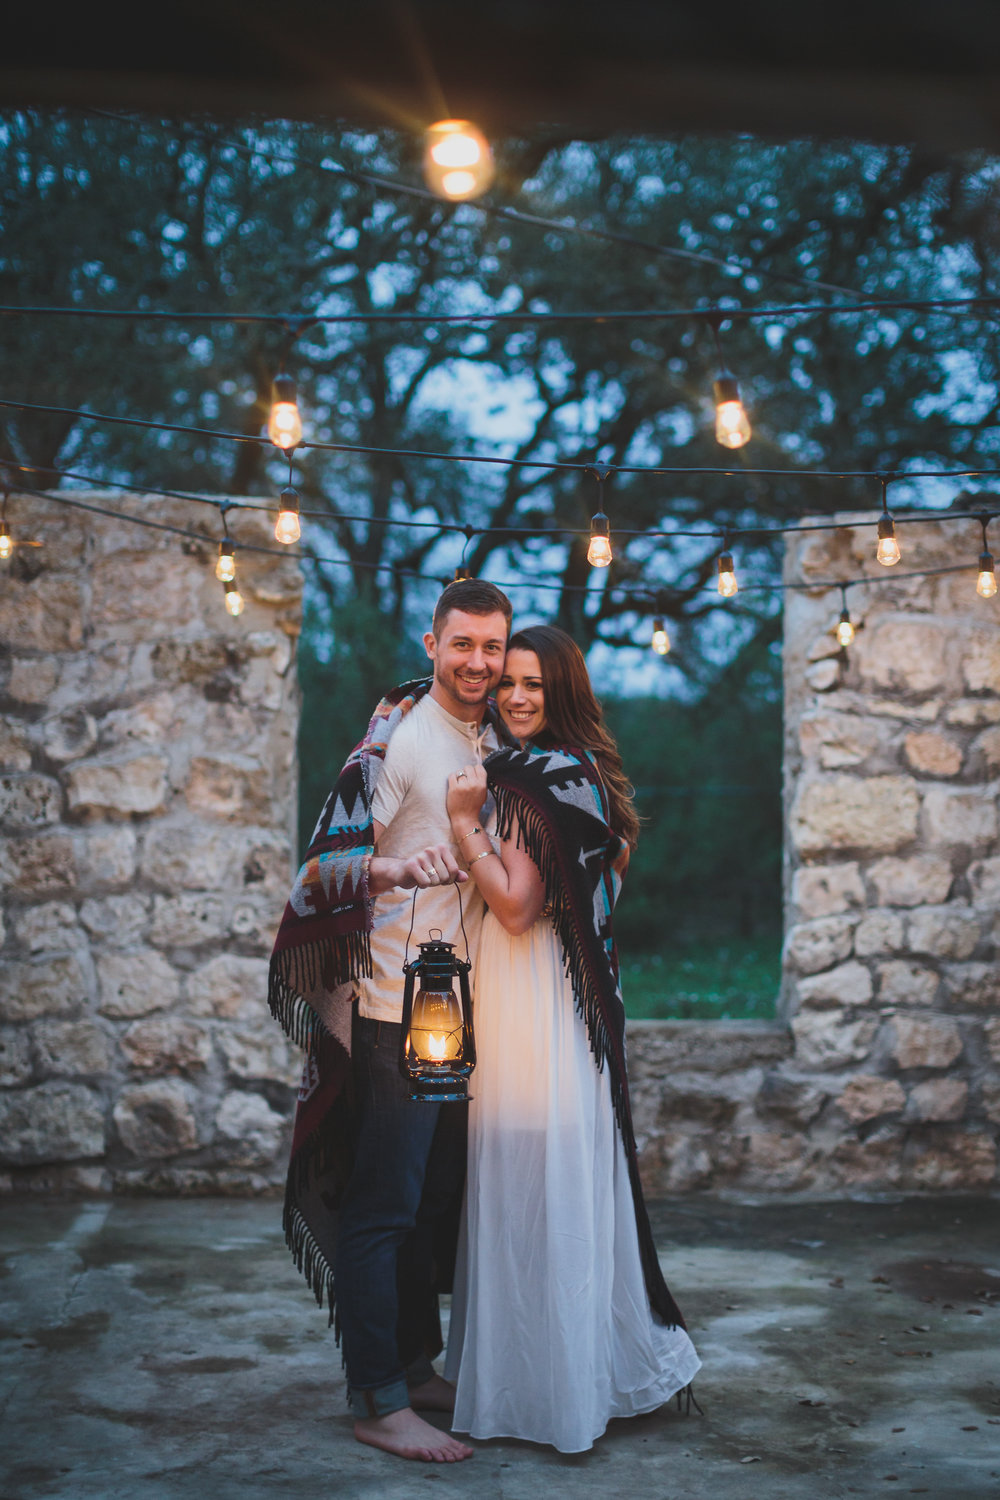 pedernales_engagement_session_33